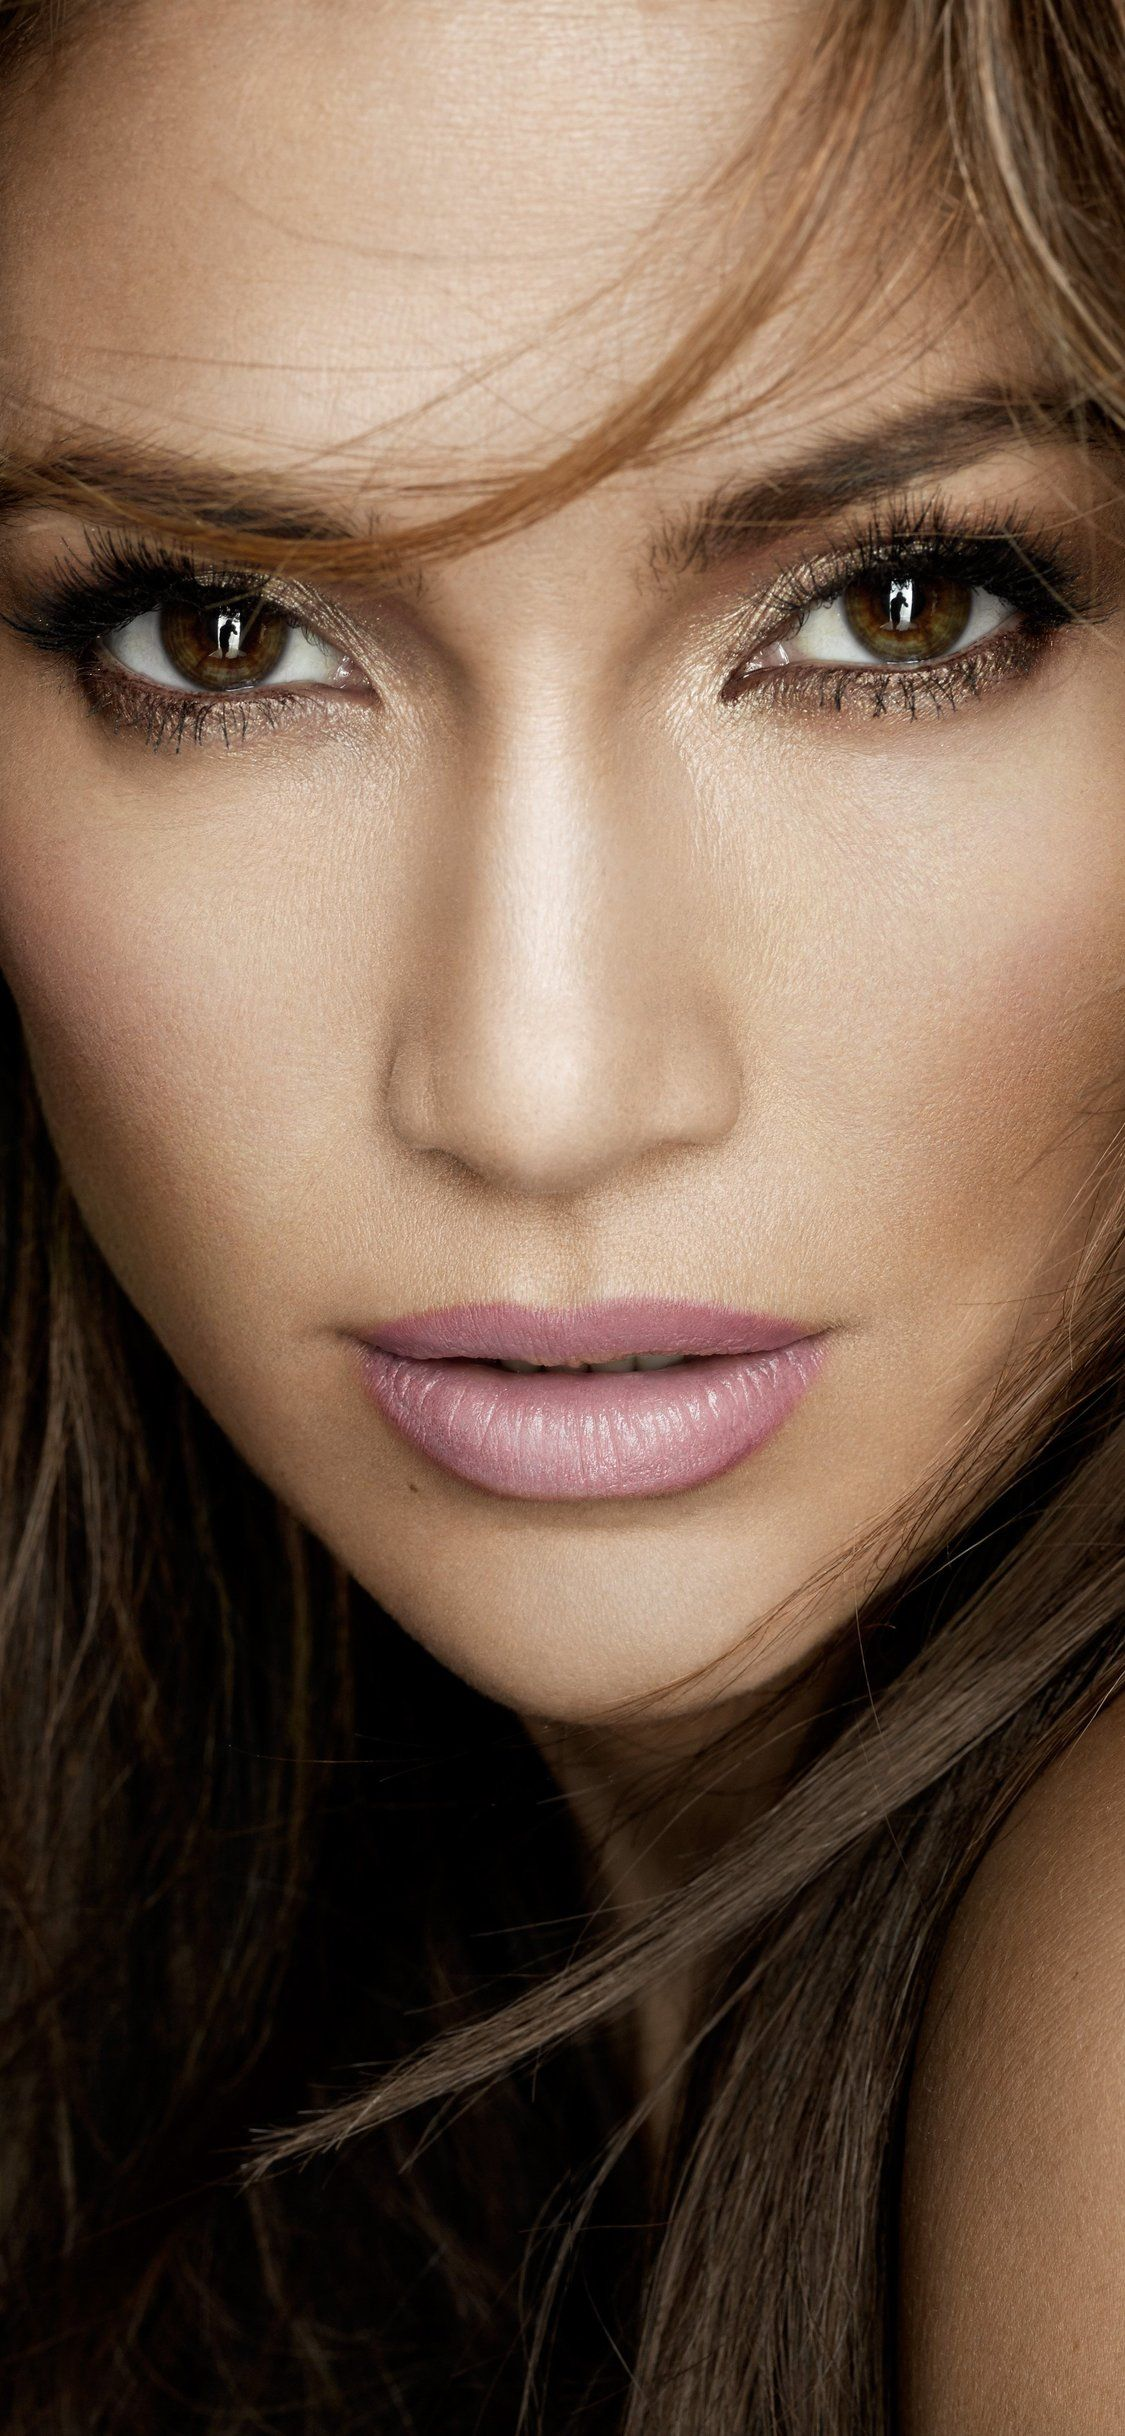 1125x2436 Jennifer Lopez 5k 2018 Iphone Xs Iphone 10 Iphone X Hd 4k Wallpapers Images Backgrounds Photos An Jennifer Lopez Jennifer Lopez Wallpaper Jlo Hair